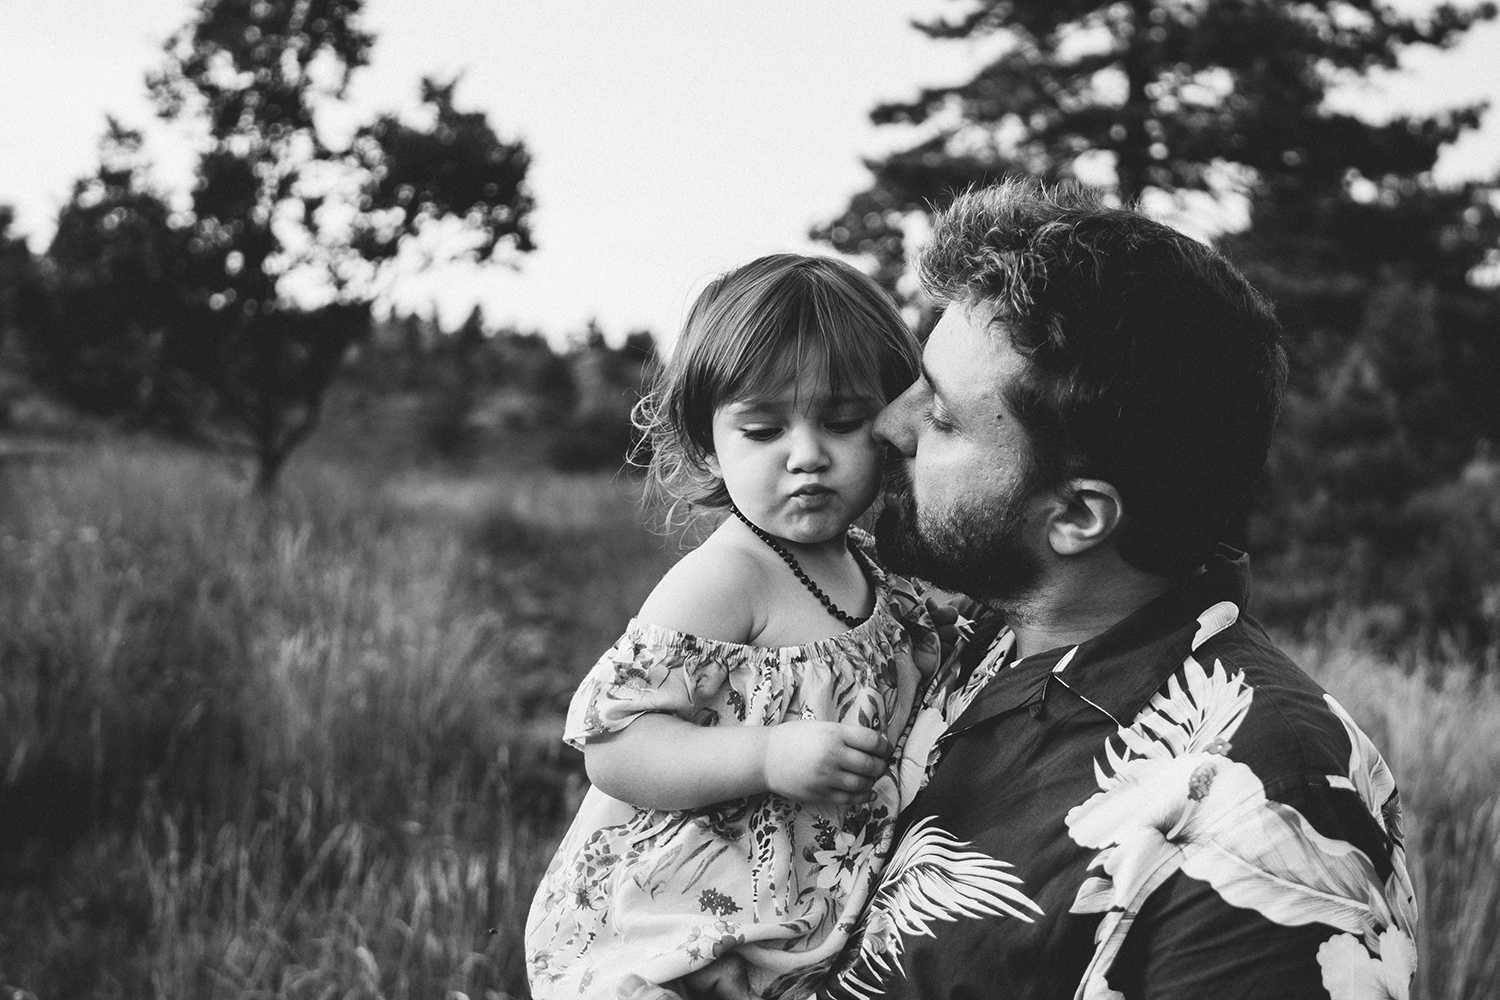 Family outdoor photo session. dad kissing with daughter. Rebecca Rinaldi Photography.